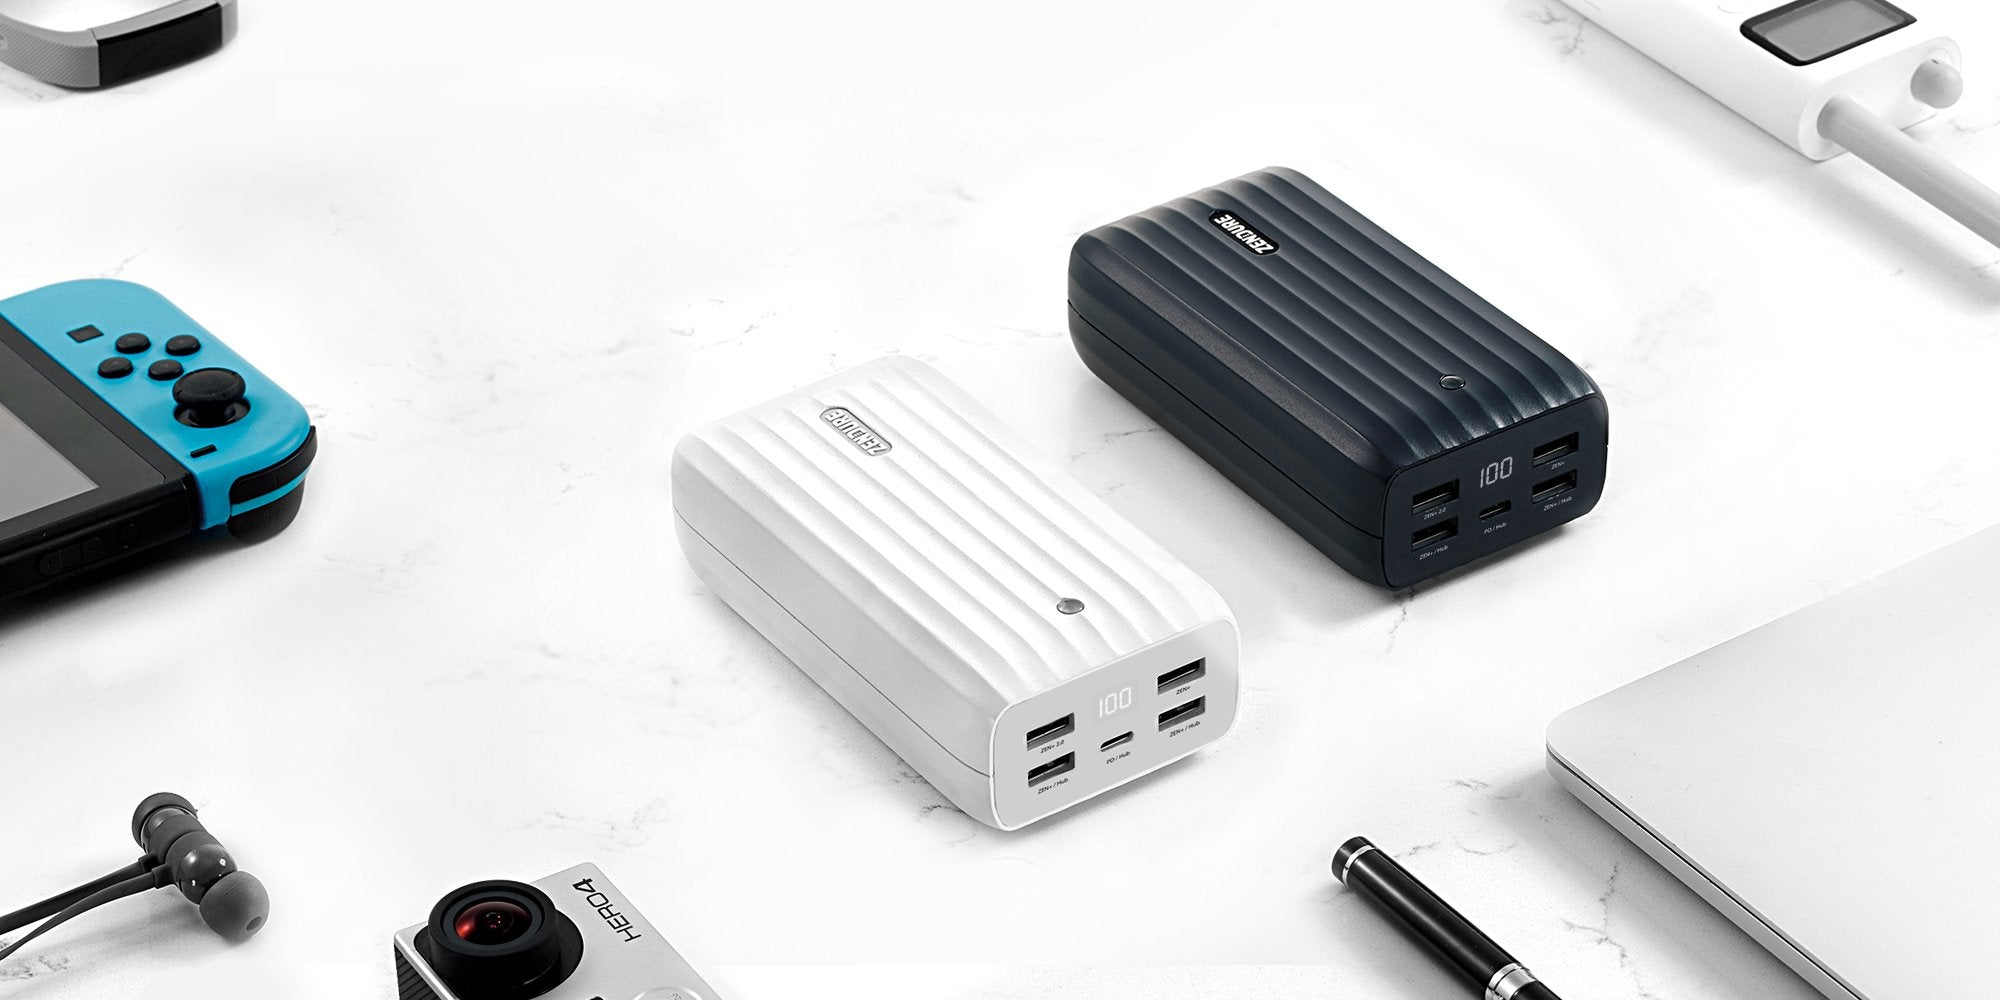 Zendure X6 power bank and hub